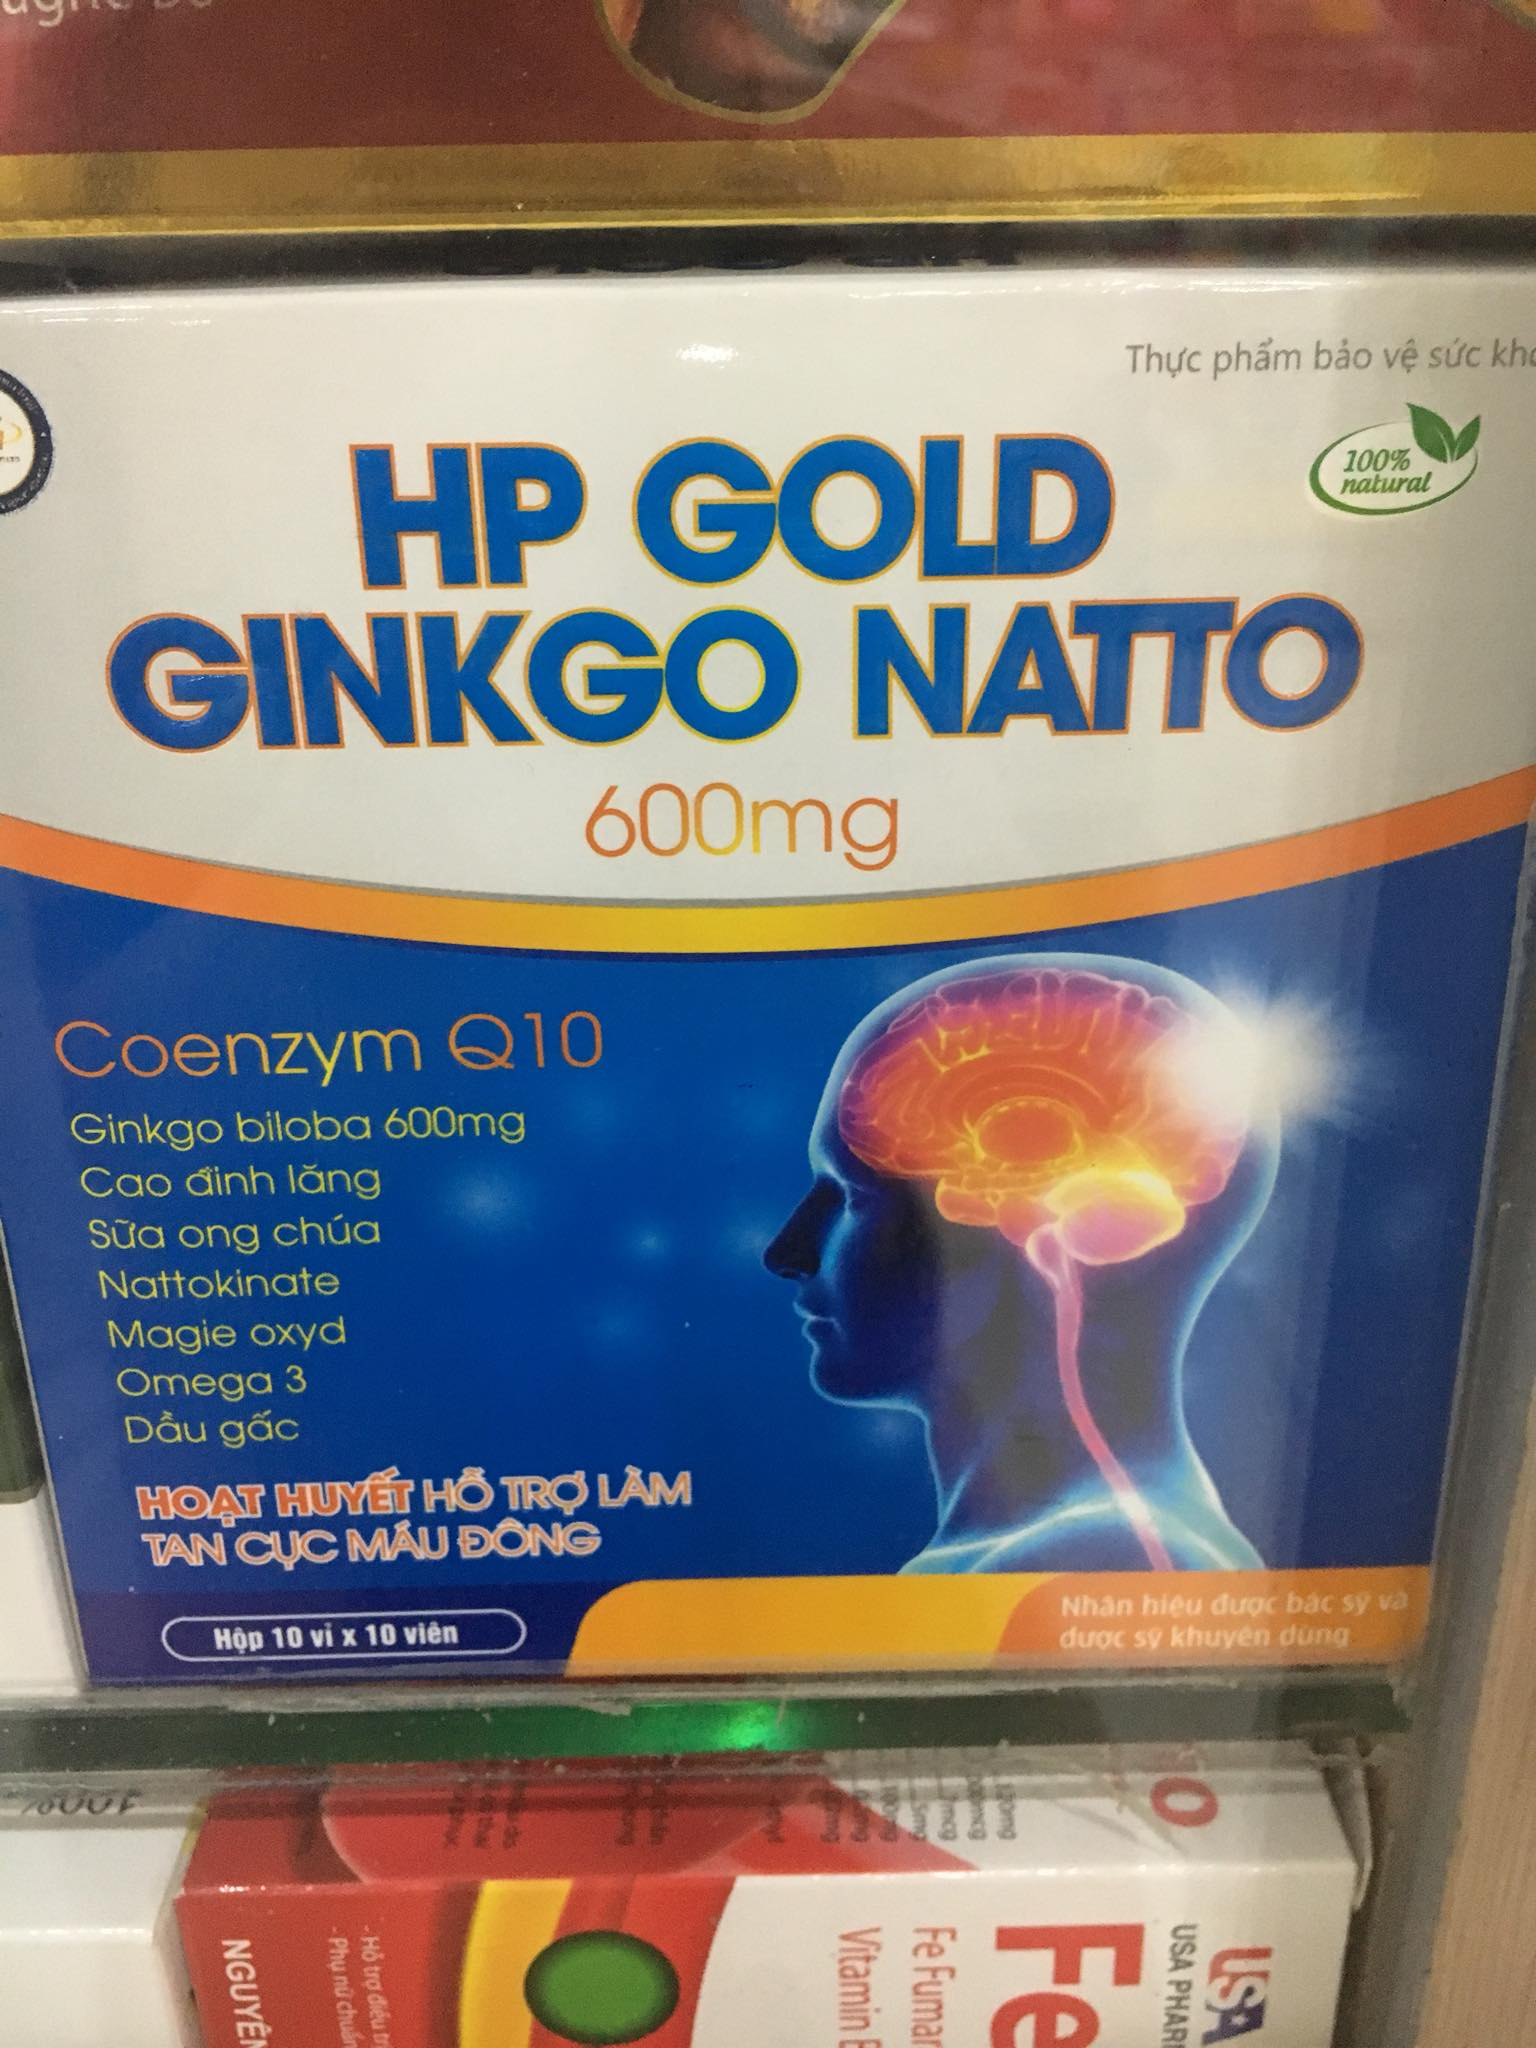 HP Gold Ginkgo Natto 600mg